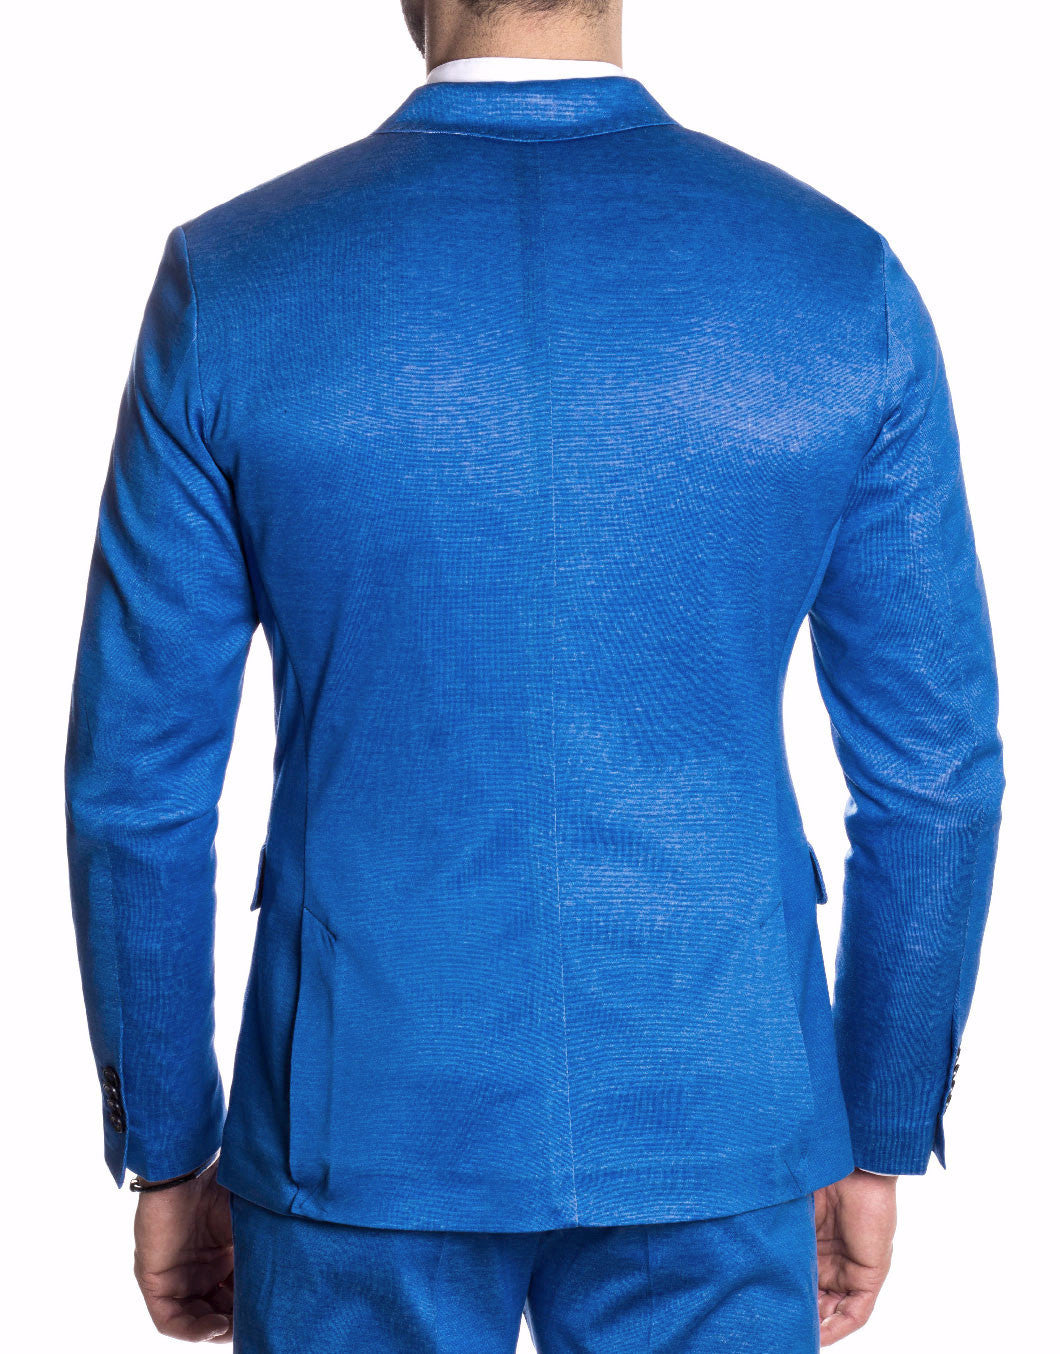 MEN'S BLAZER | BLUE ROYAL VANISE BLAZER | NOHOW STREET COUTURE